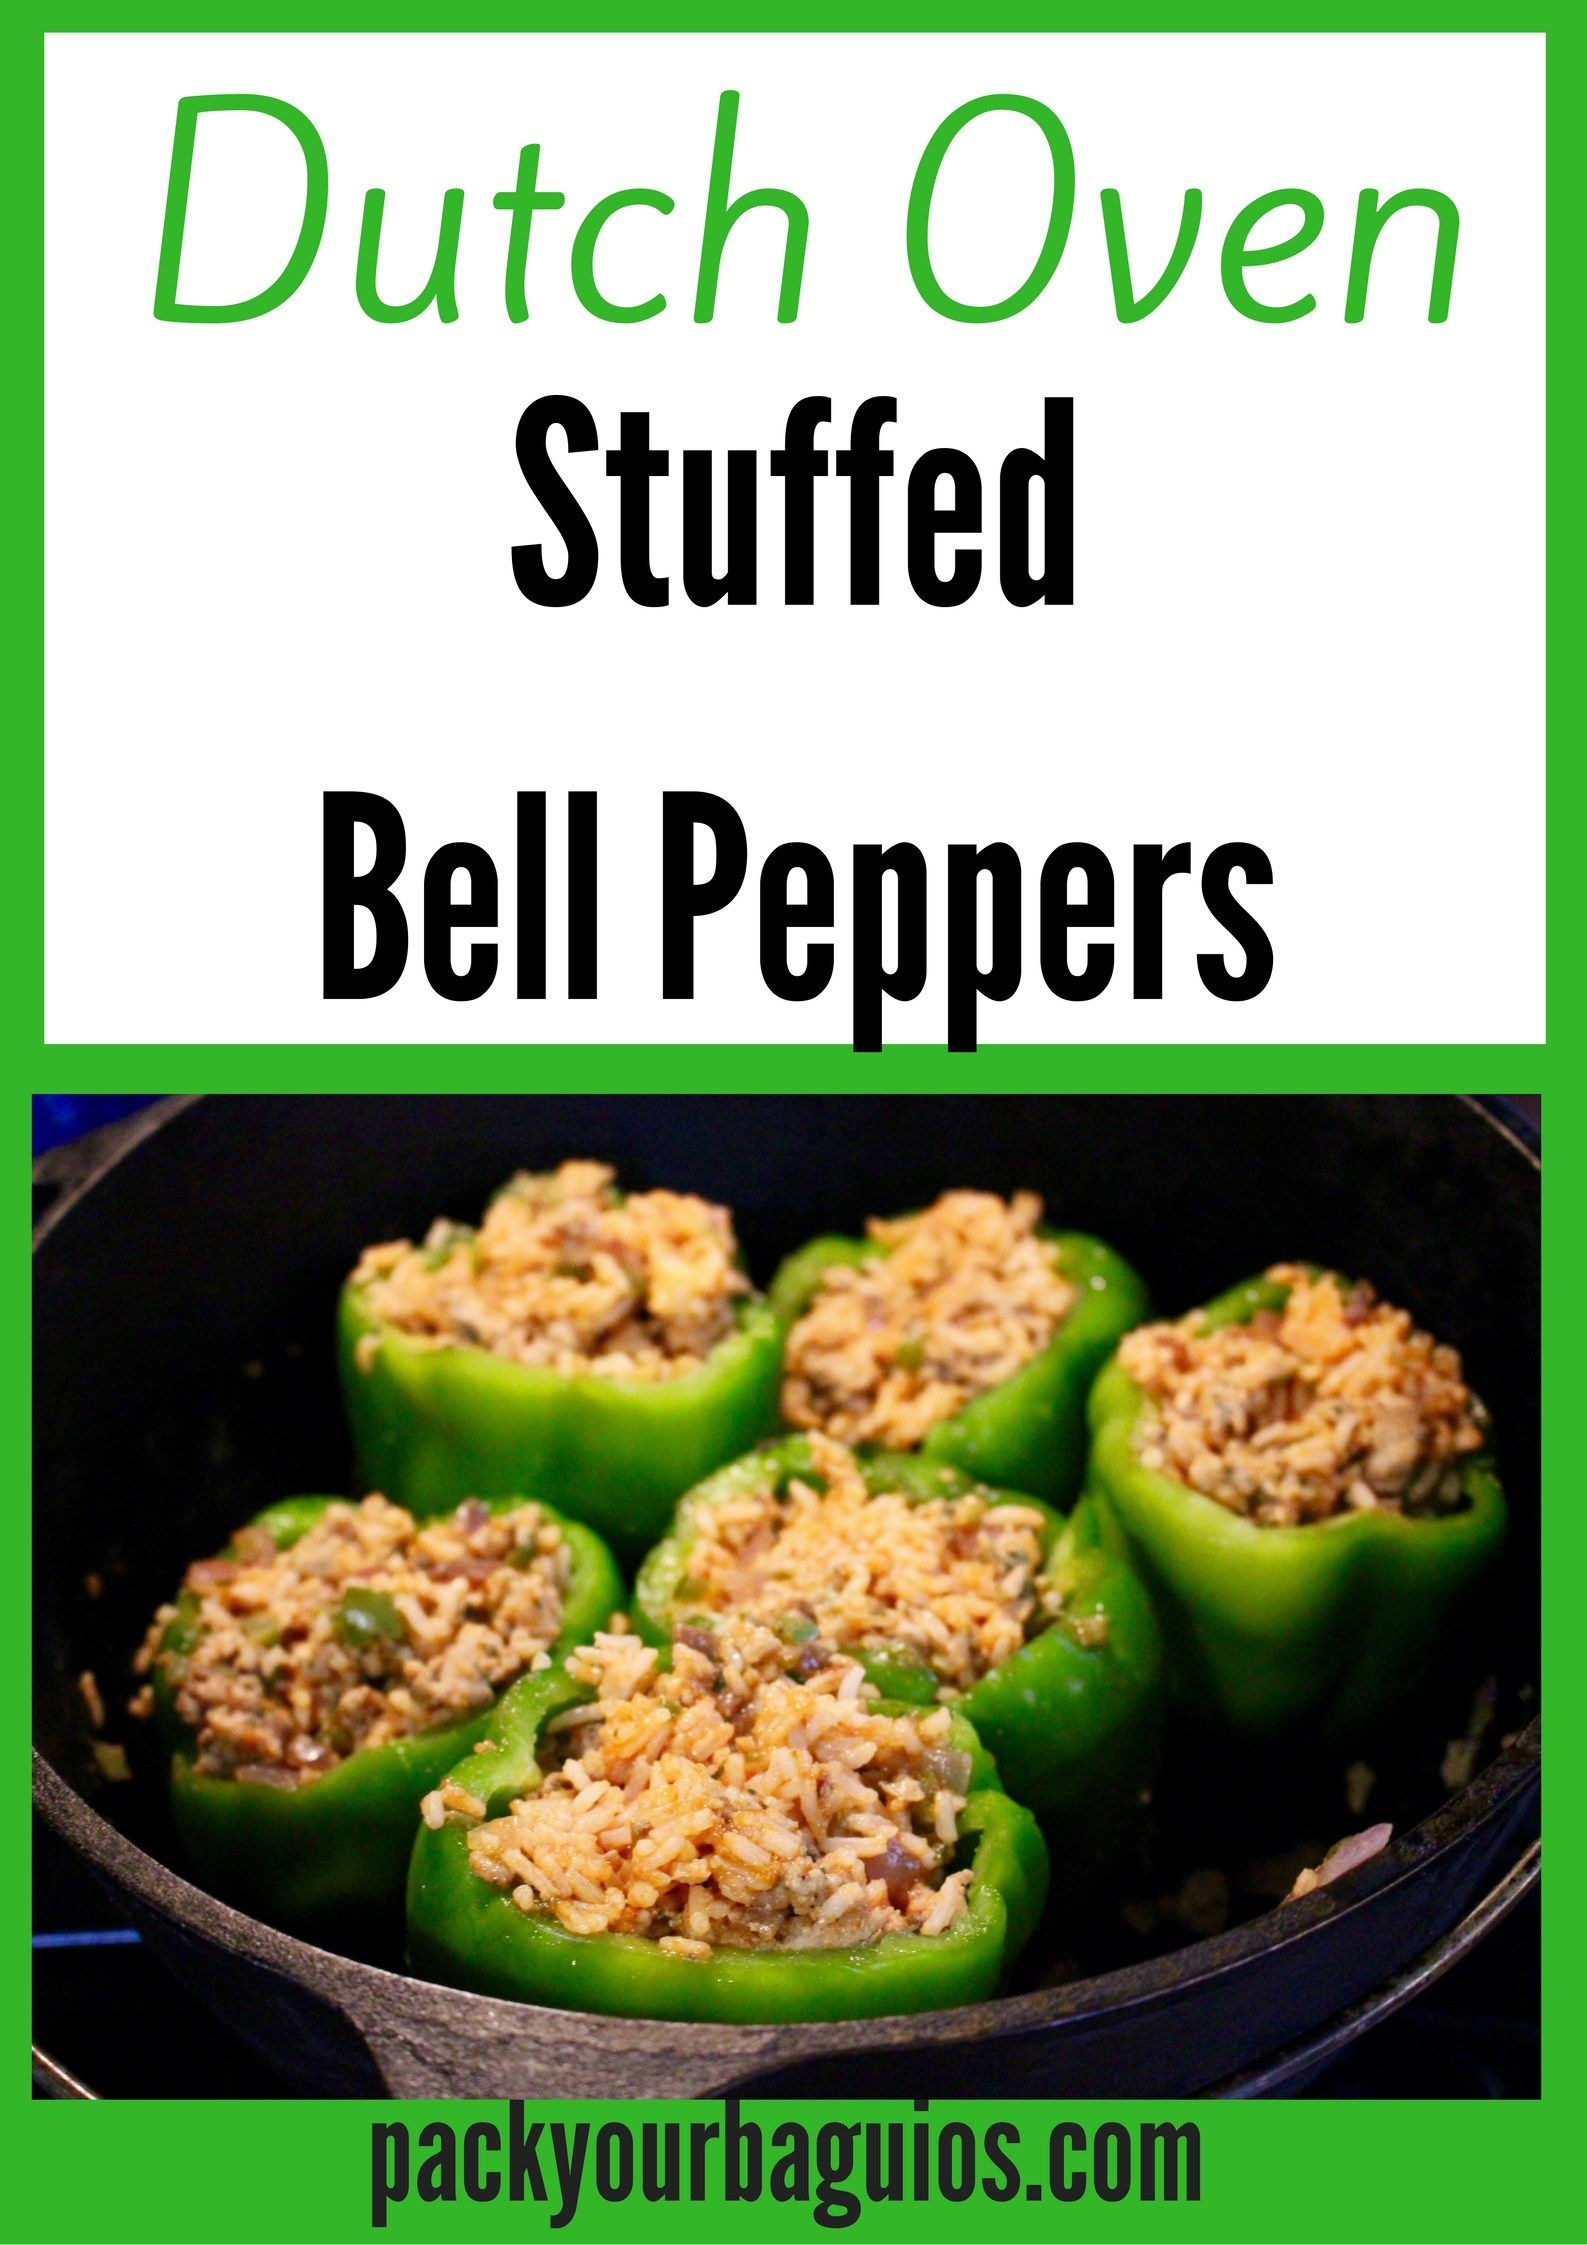 Stuffed Bell Peppers Dutch Oven Recipe Campfire Cooking Camping Stuffed Peppers Stuffed Bell Peppers Meals